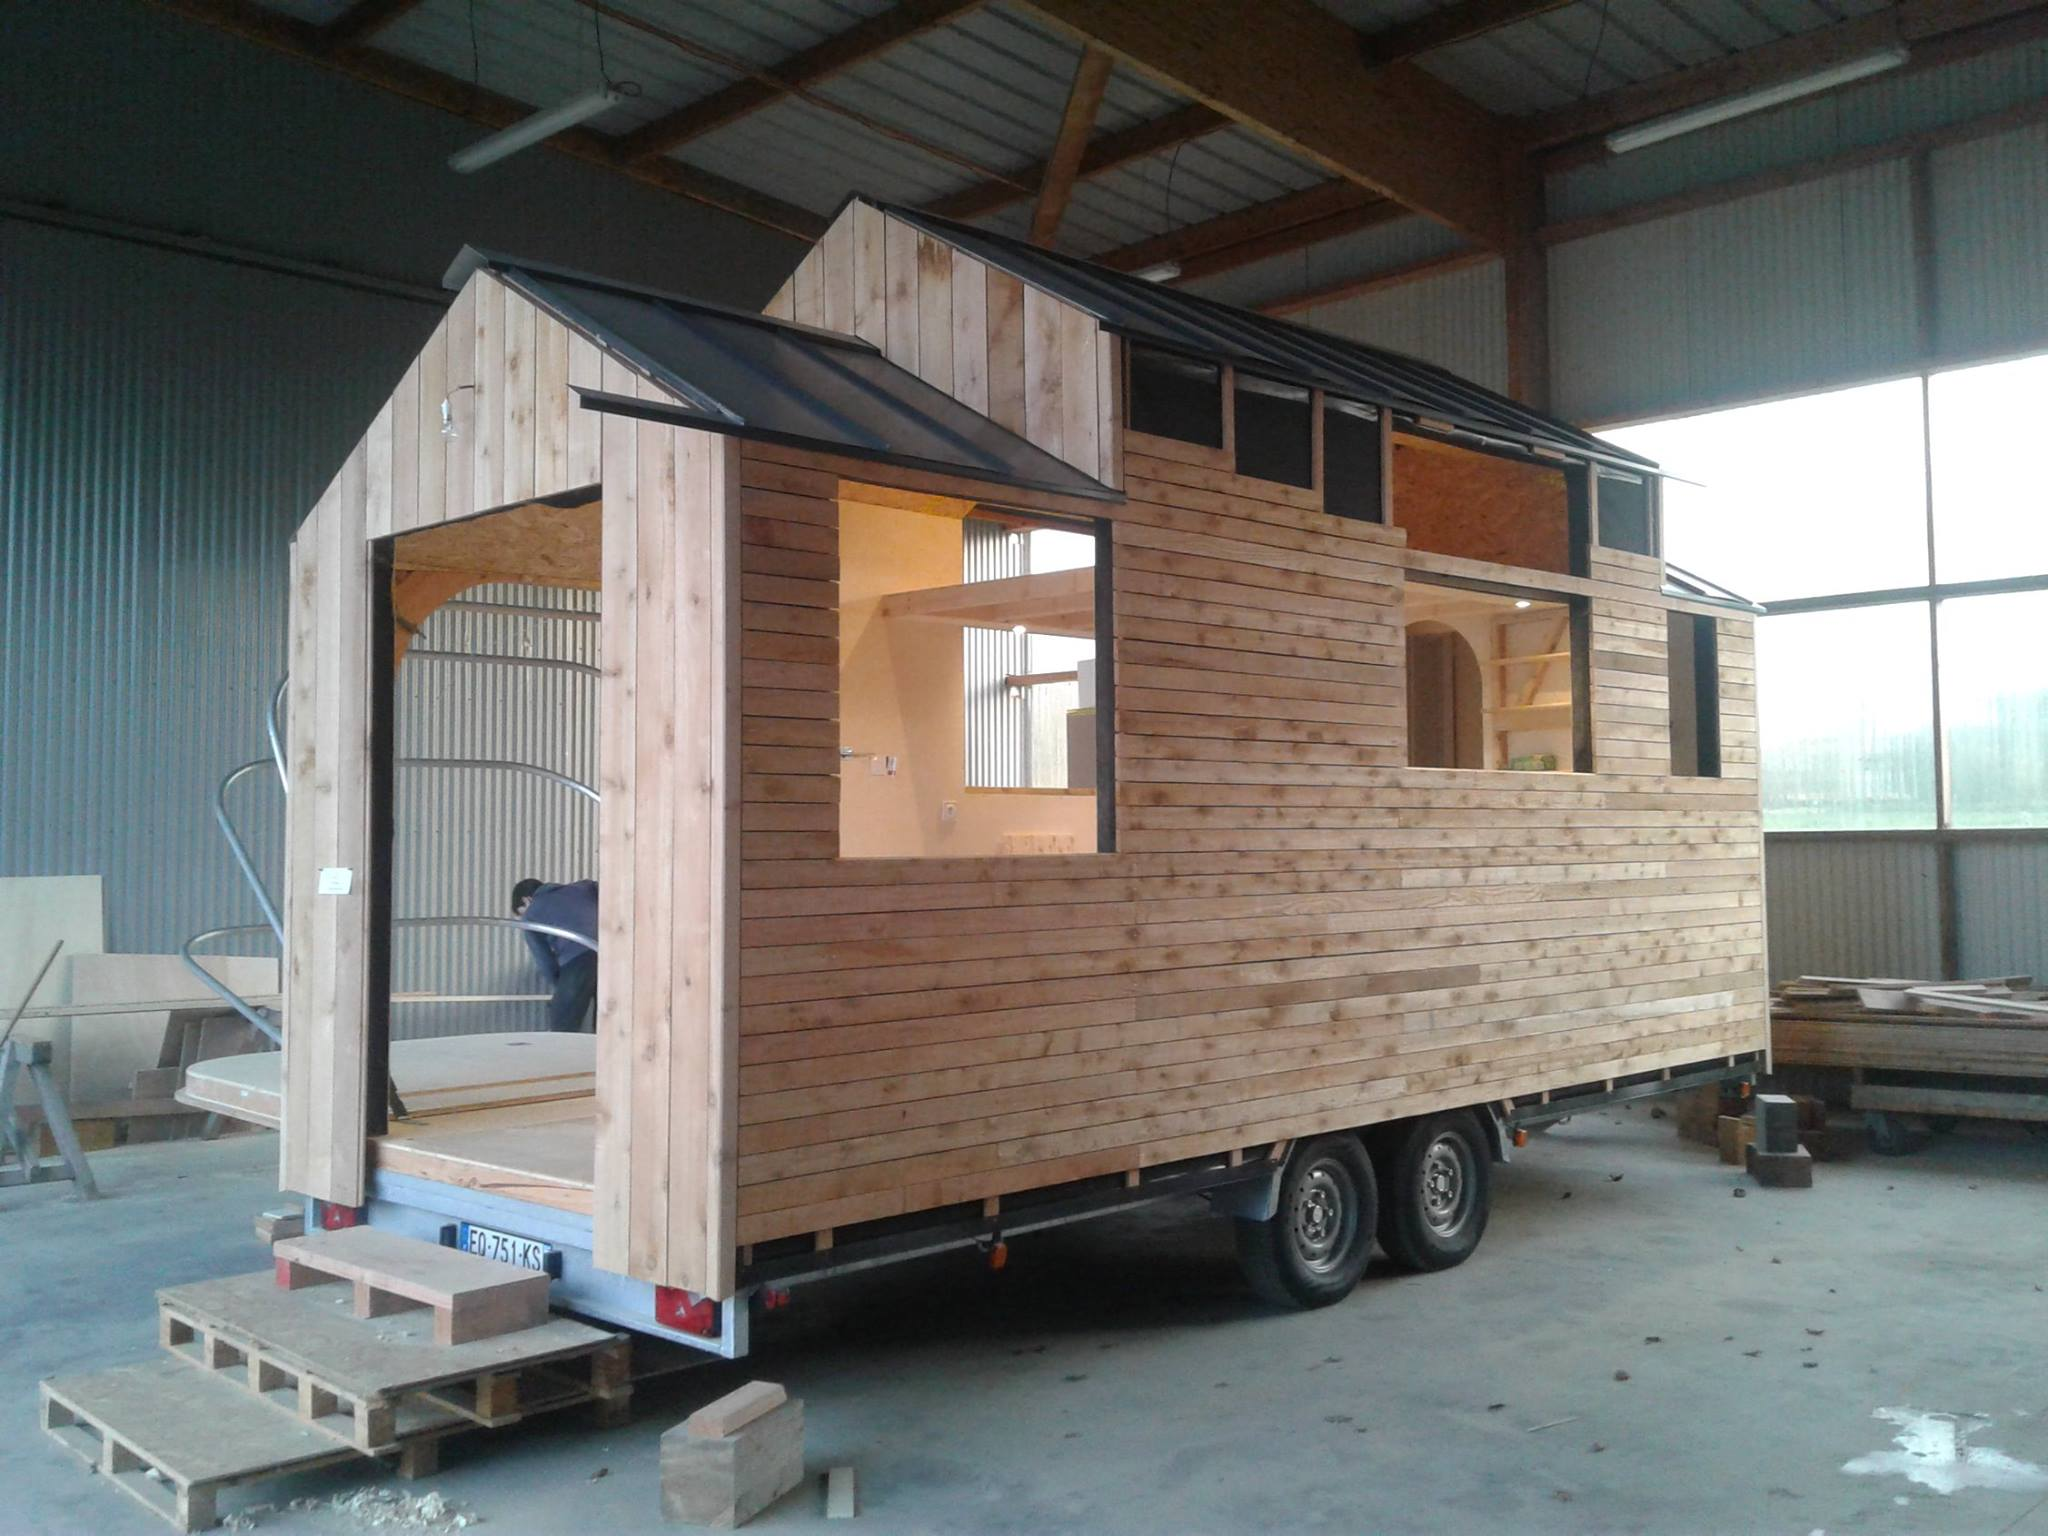 koateco construit une tiny house la mini. Black Bedroom Furniture Sets. Home Design Ideas